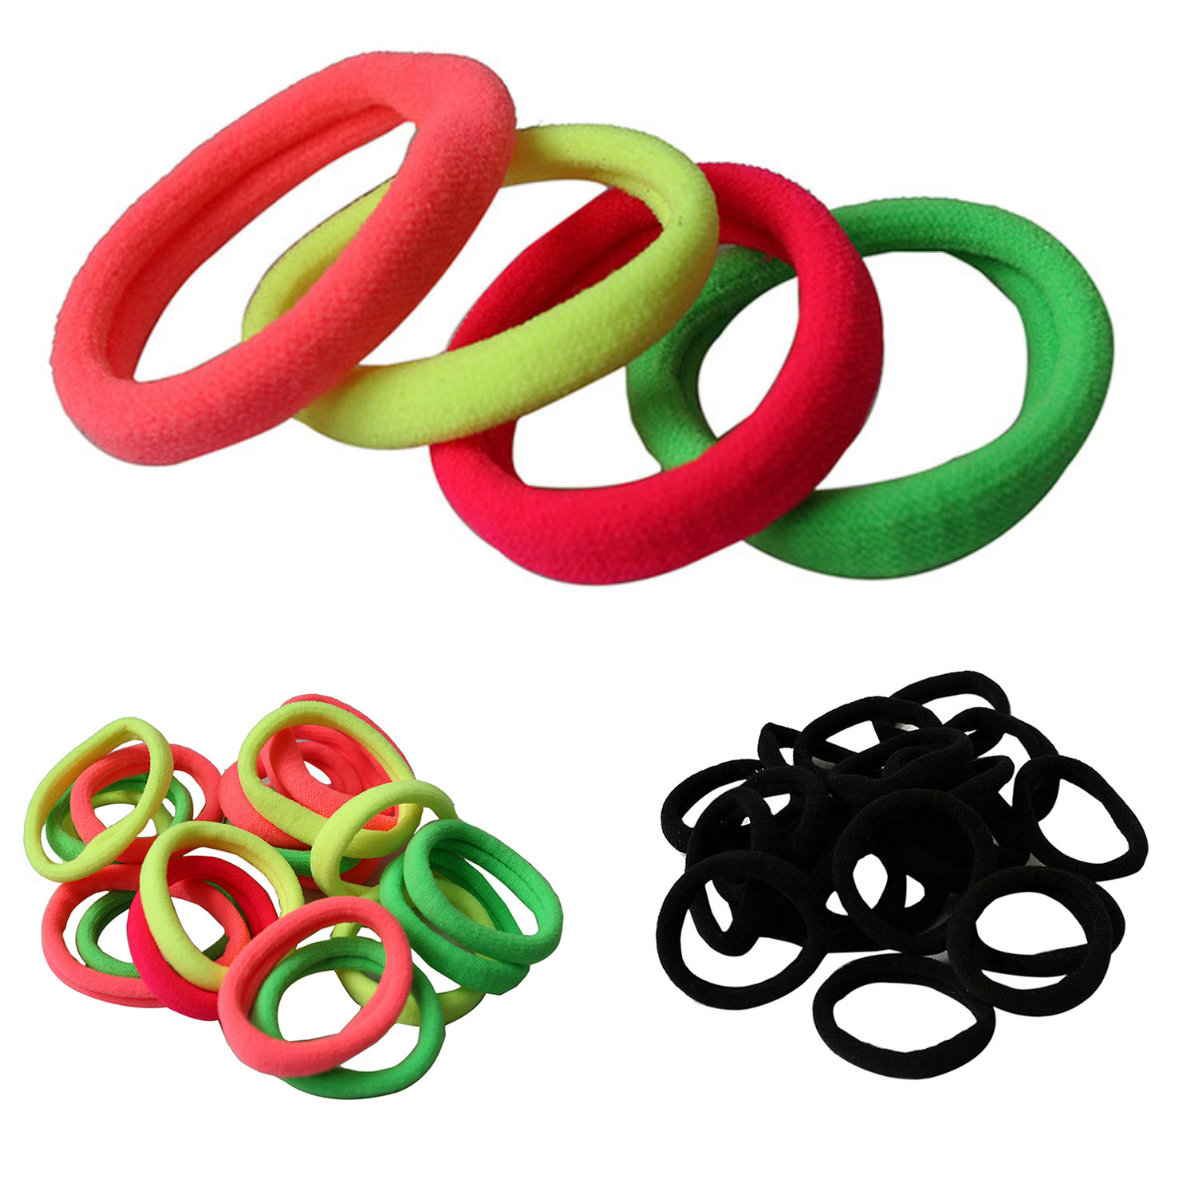 10pcs Hairdressing Tools Black Rubber Band Hair Ties/Rings/Ropes Gum Springs Ponytail Holders Hair Accessories Elastic Hair Band